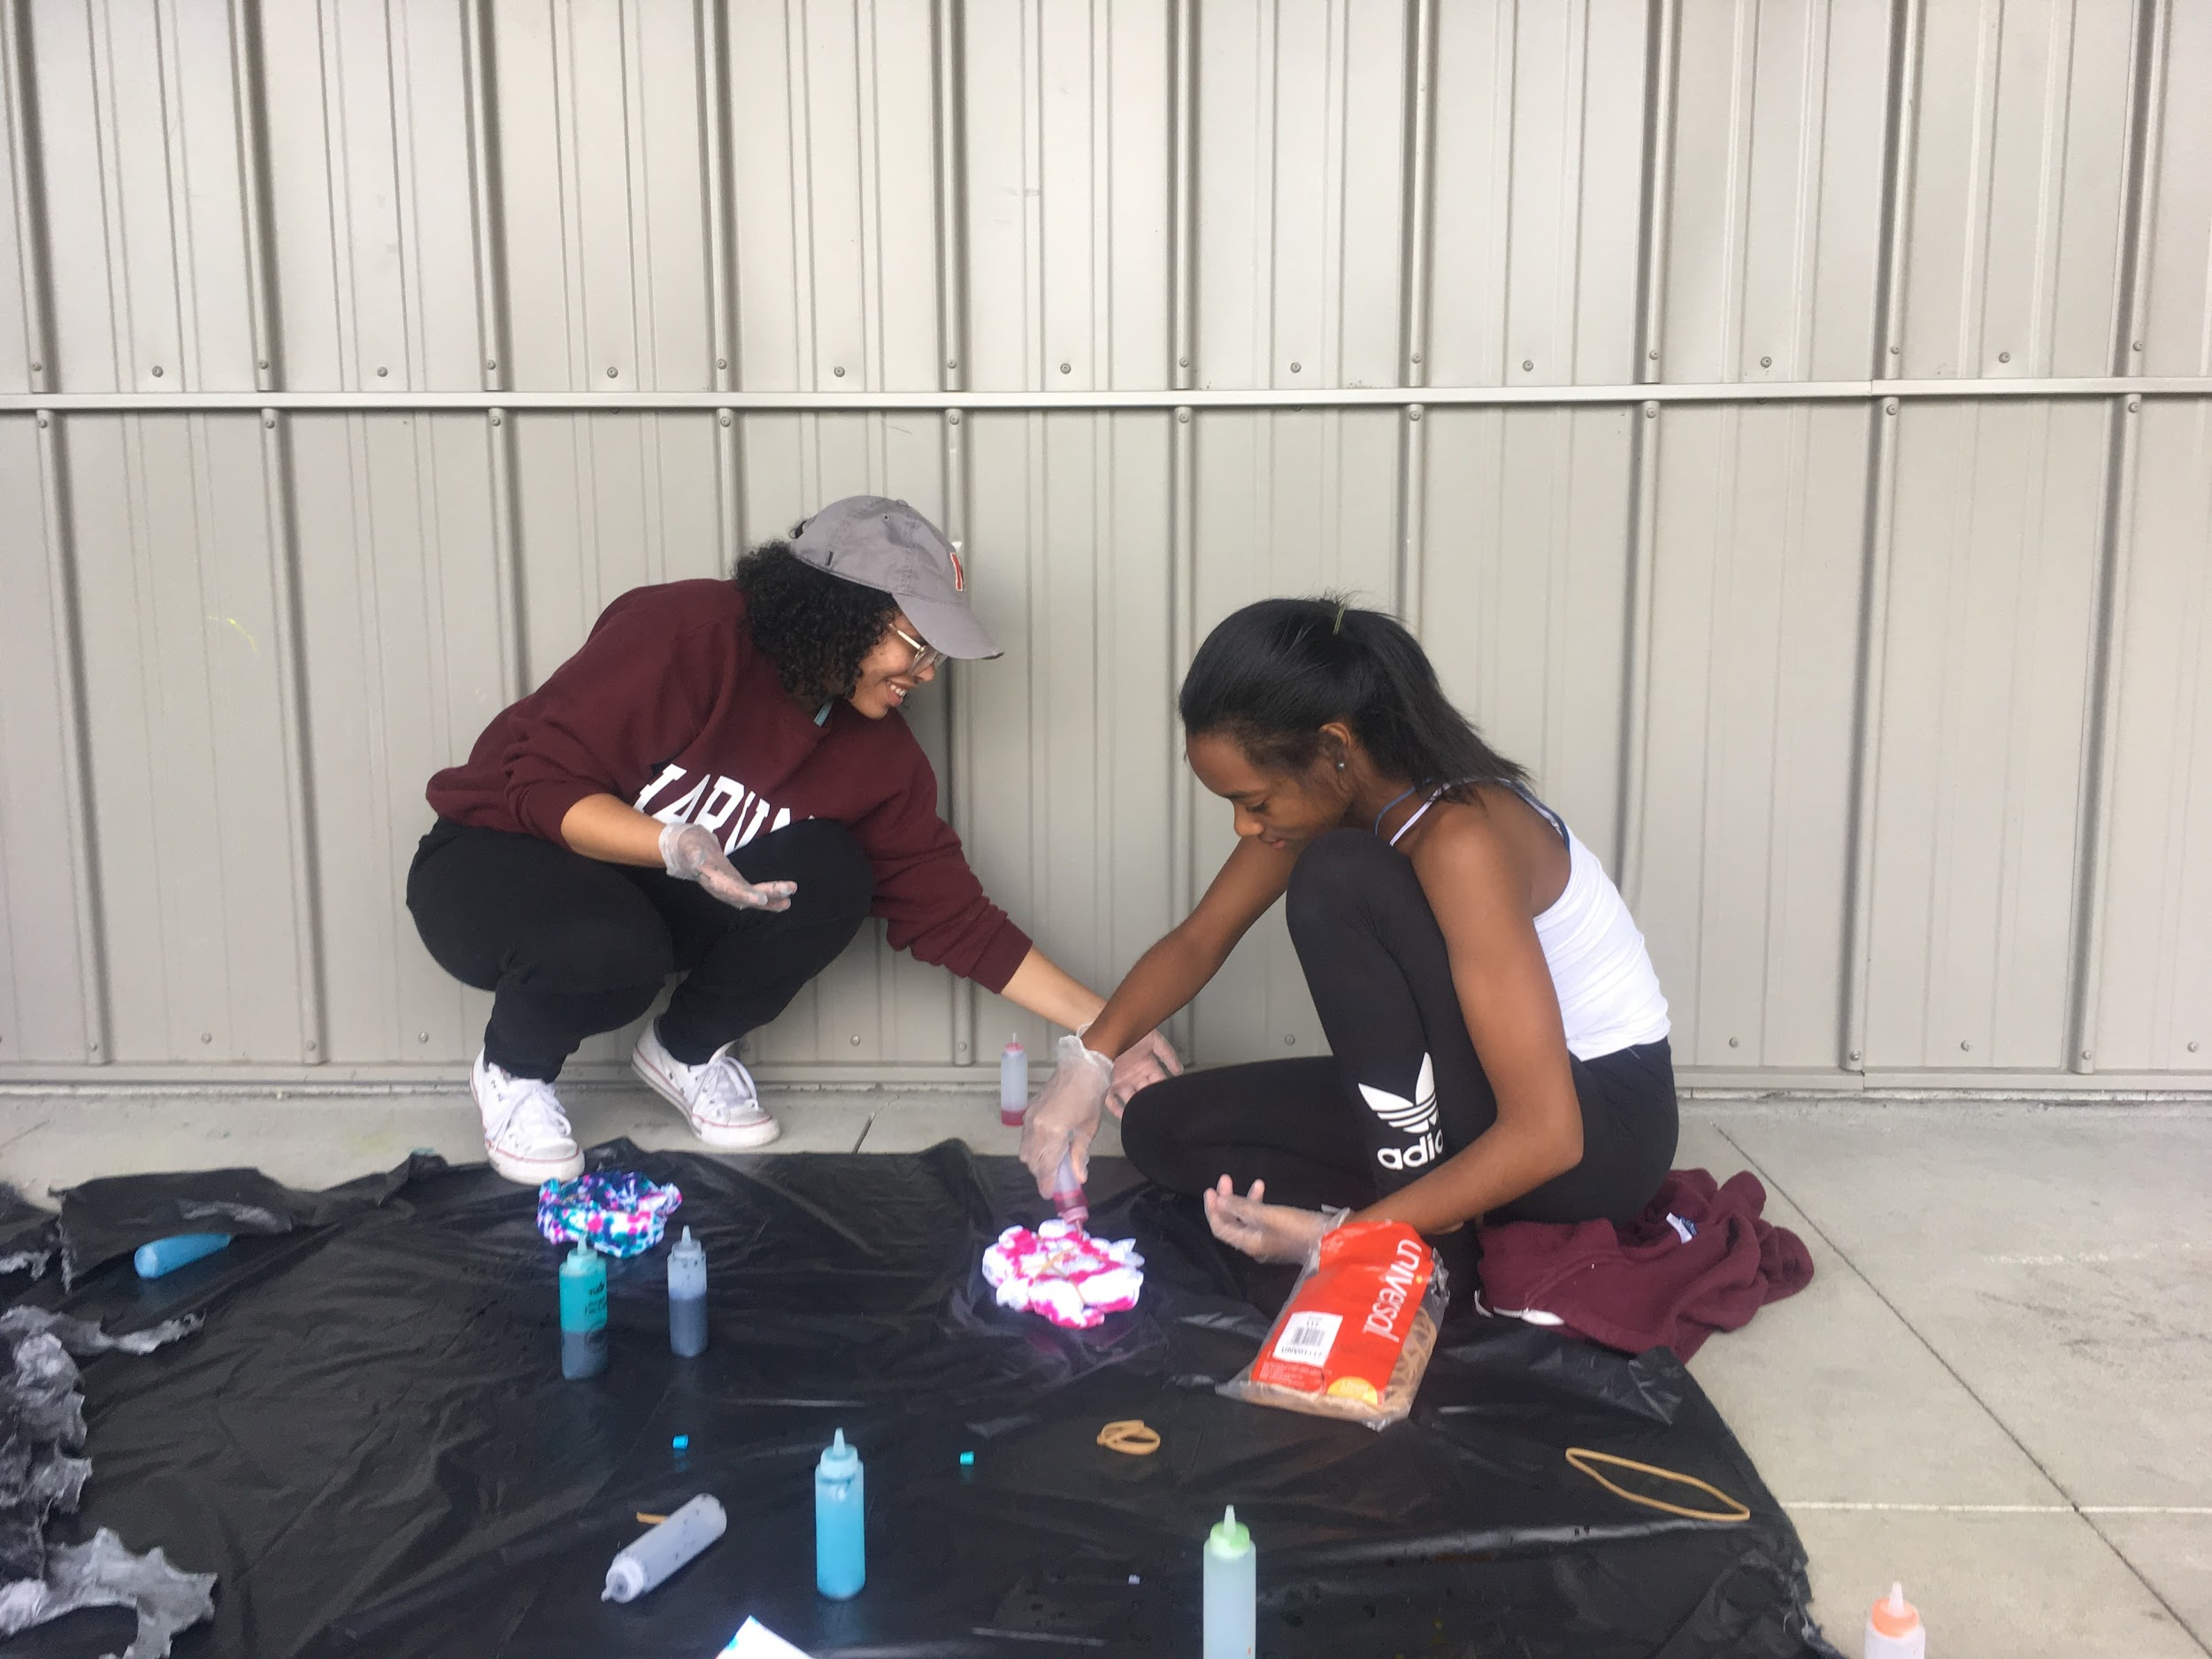 Ms. Rodrigues and Juju making their tie-dye t-shirts